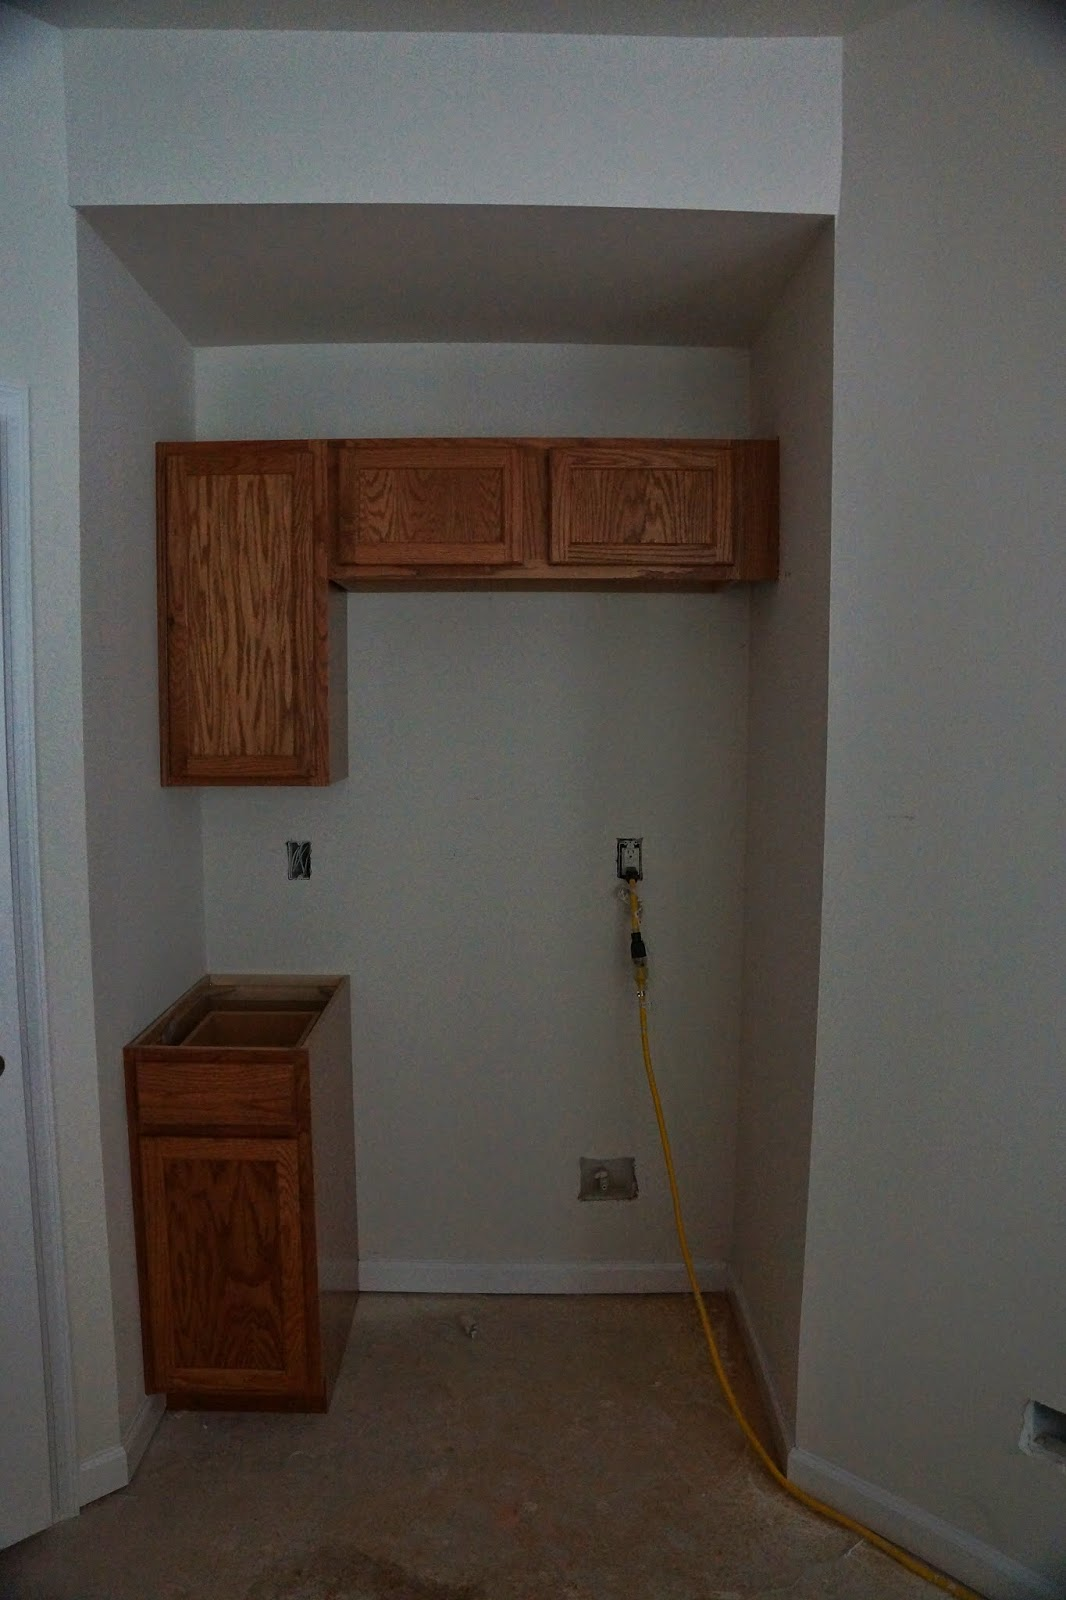 Picture of the kitchen cabinets around where the refridgerator will be before the counter is installed